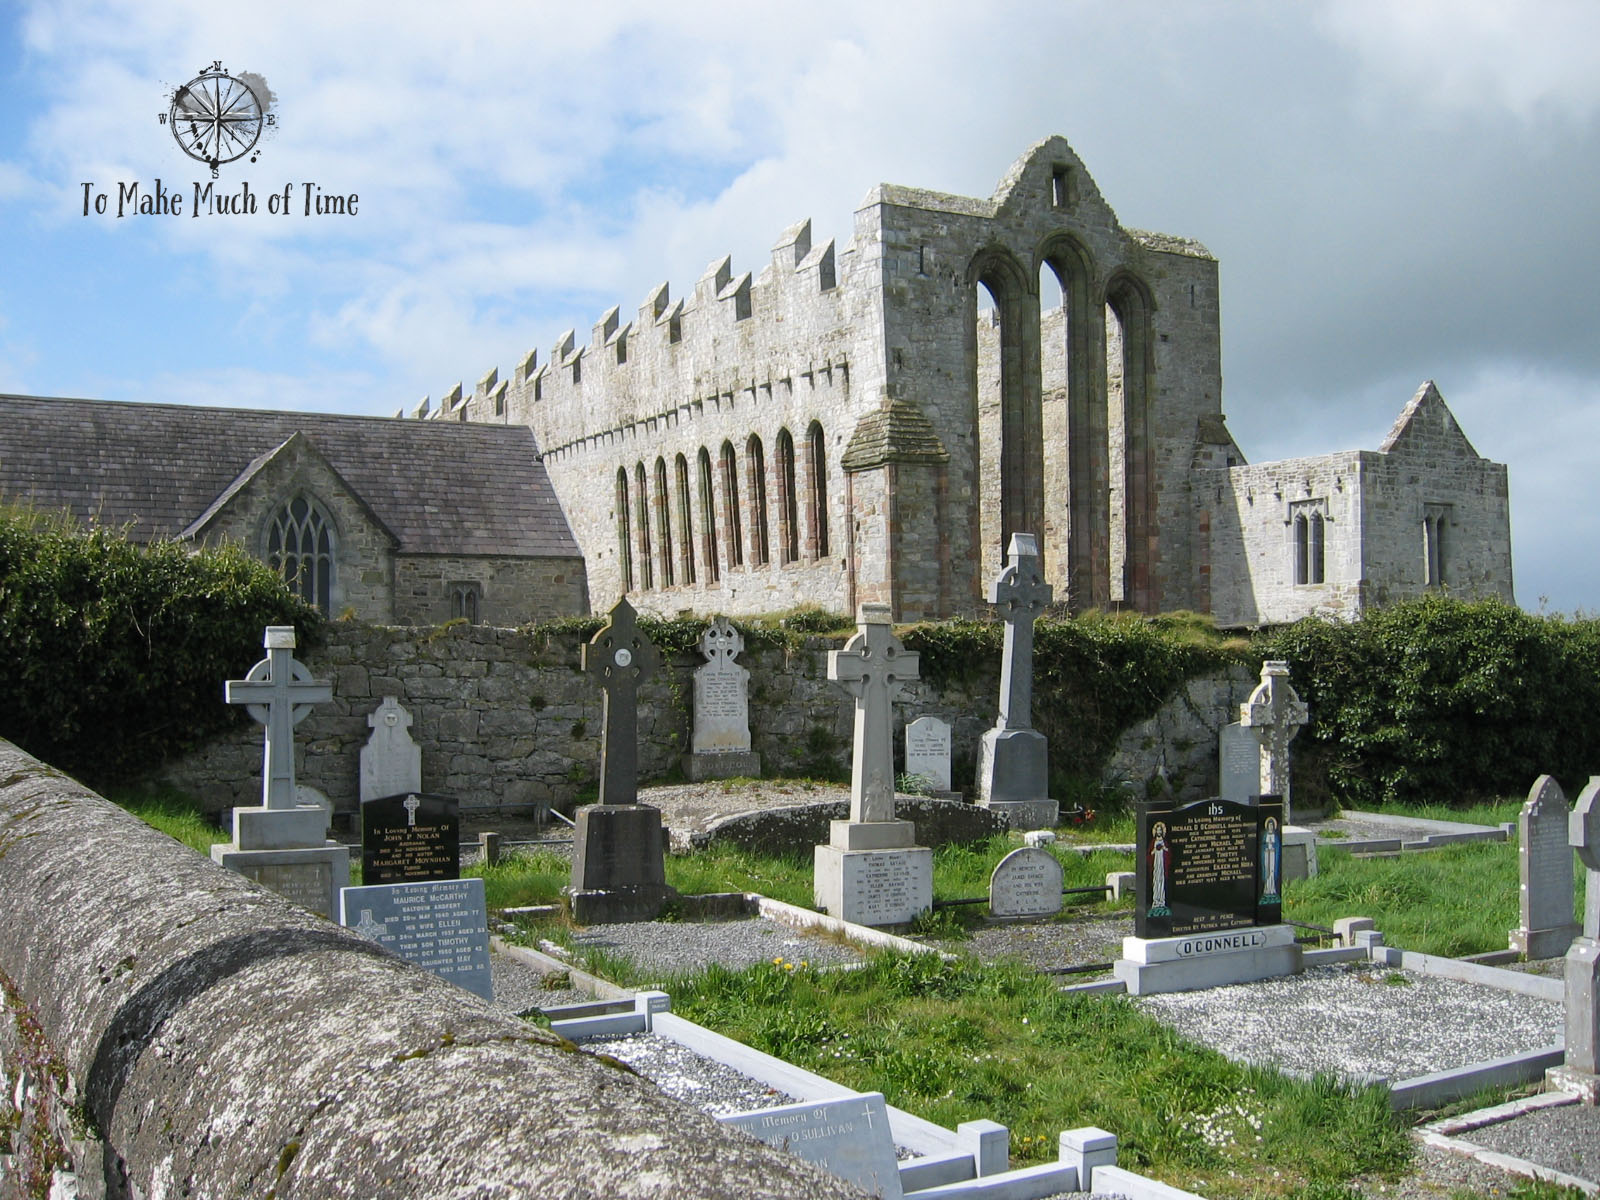 Ireland | Church Ruins | Graveyard | To Make Much of Time